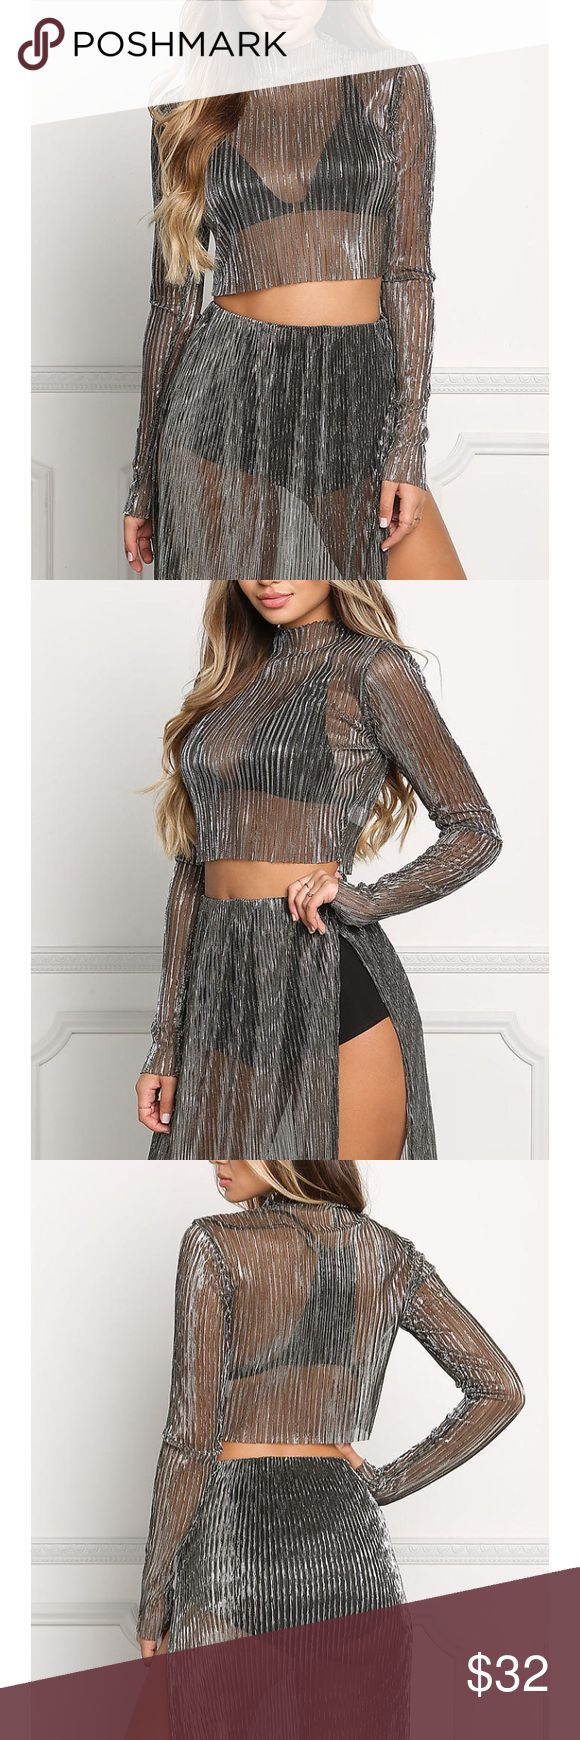 Sheer Metallic gold and silver crop top Size Suze large but also fits a medium Tops Crop Tops